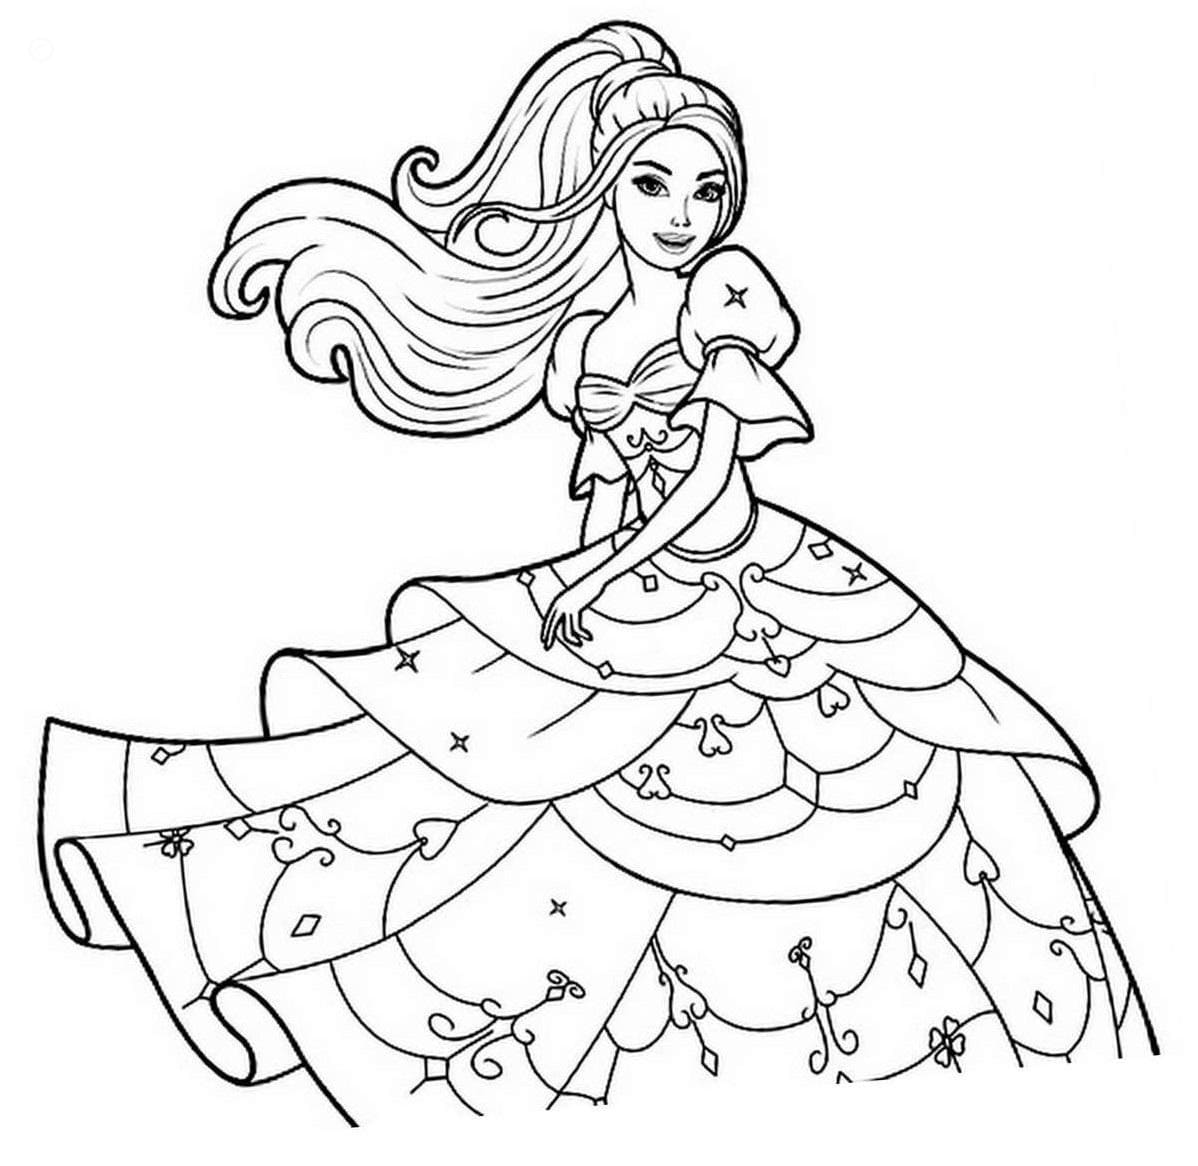 Barbie Images Free Download - Coloring Home | 1166x1198